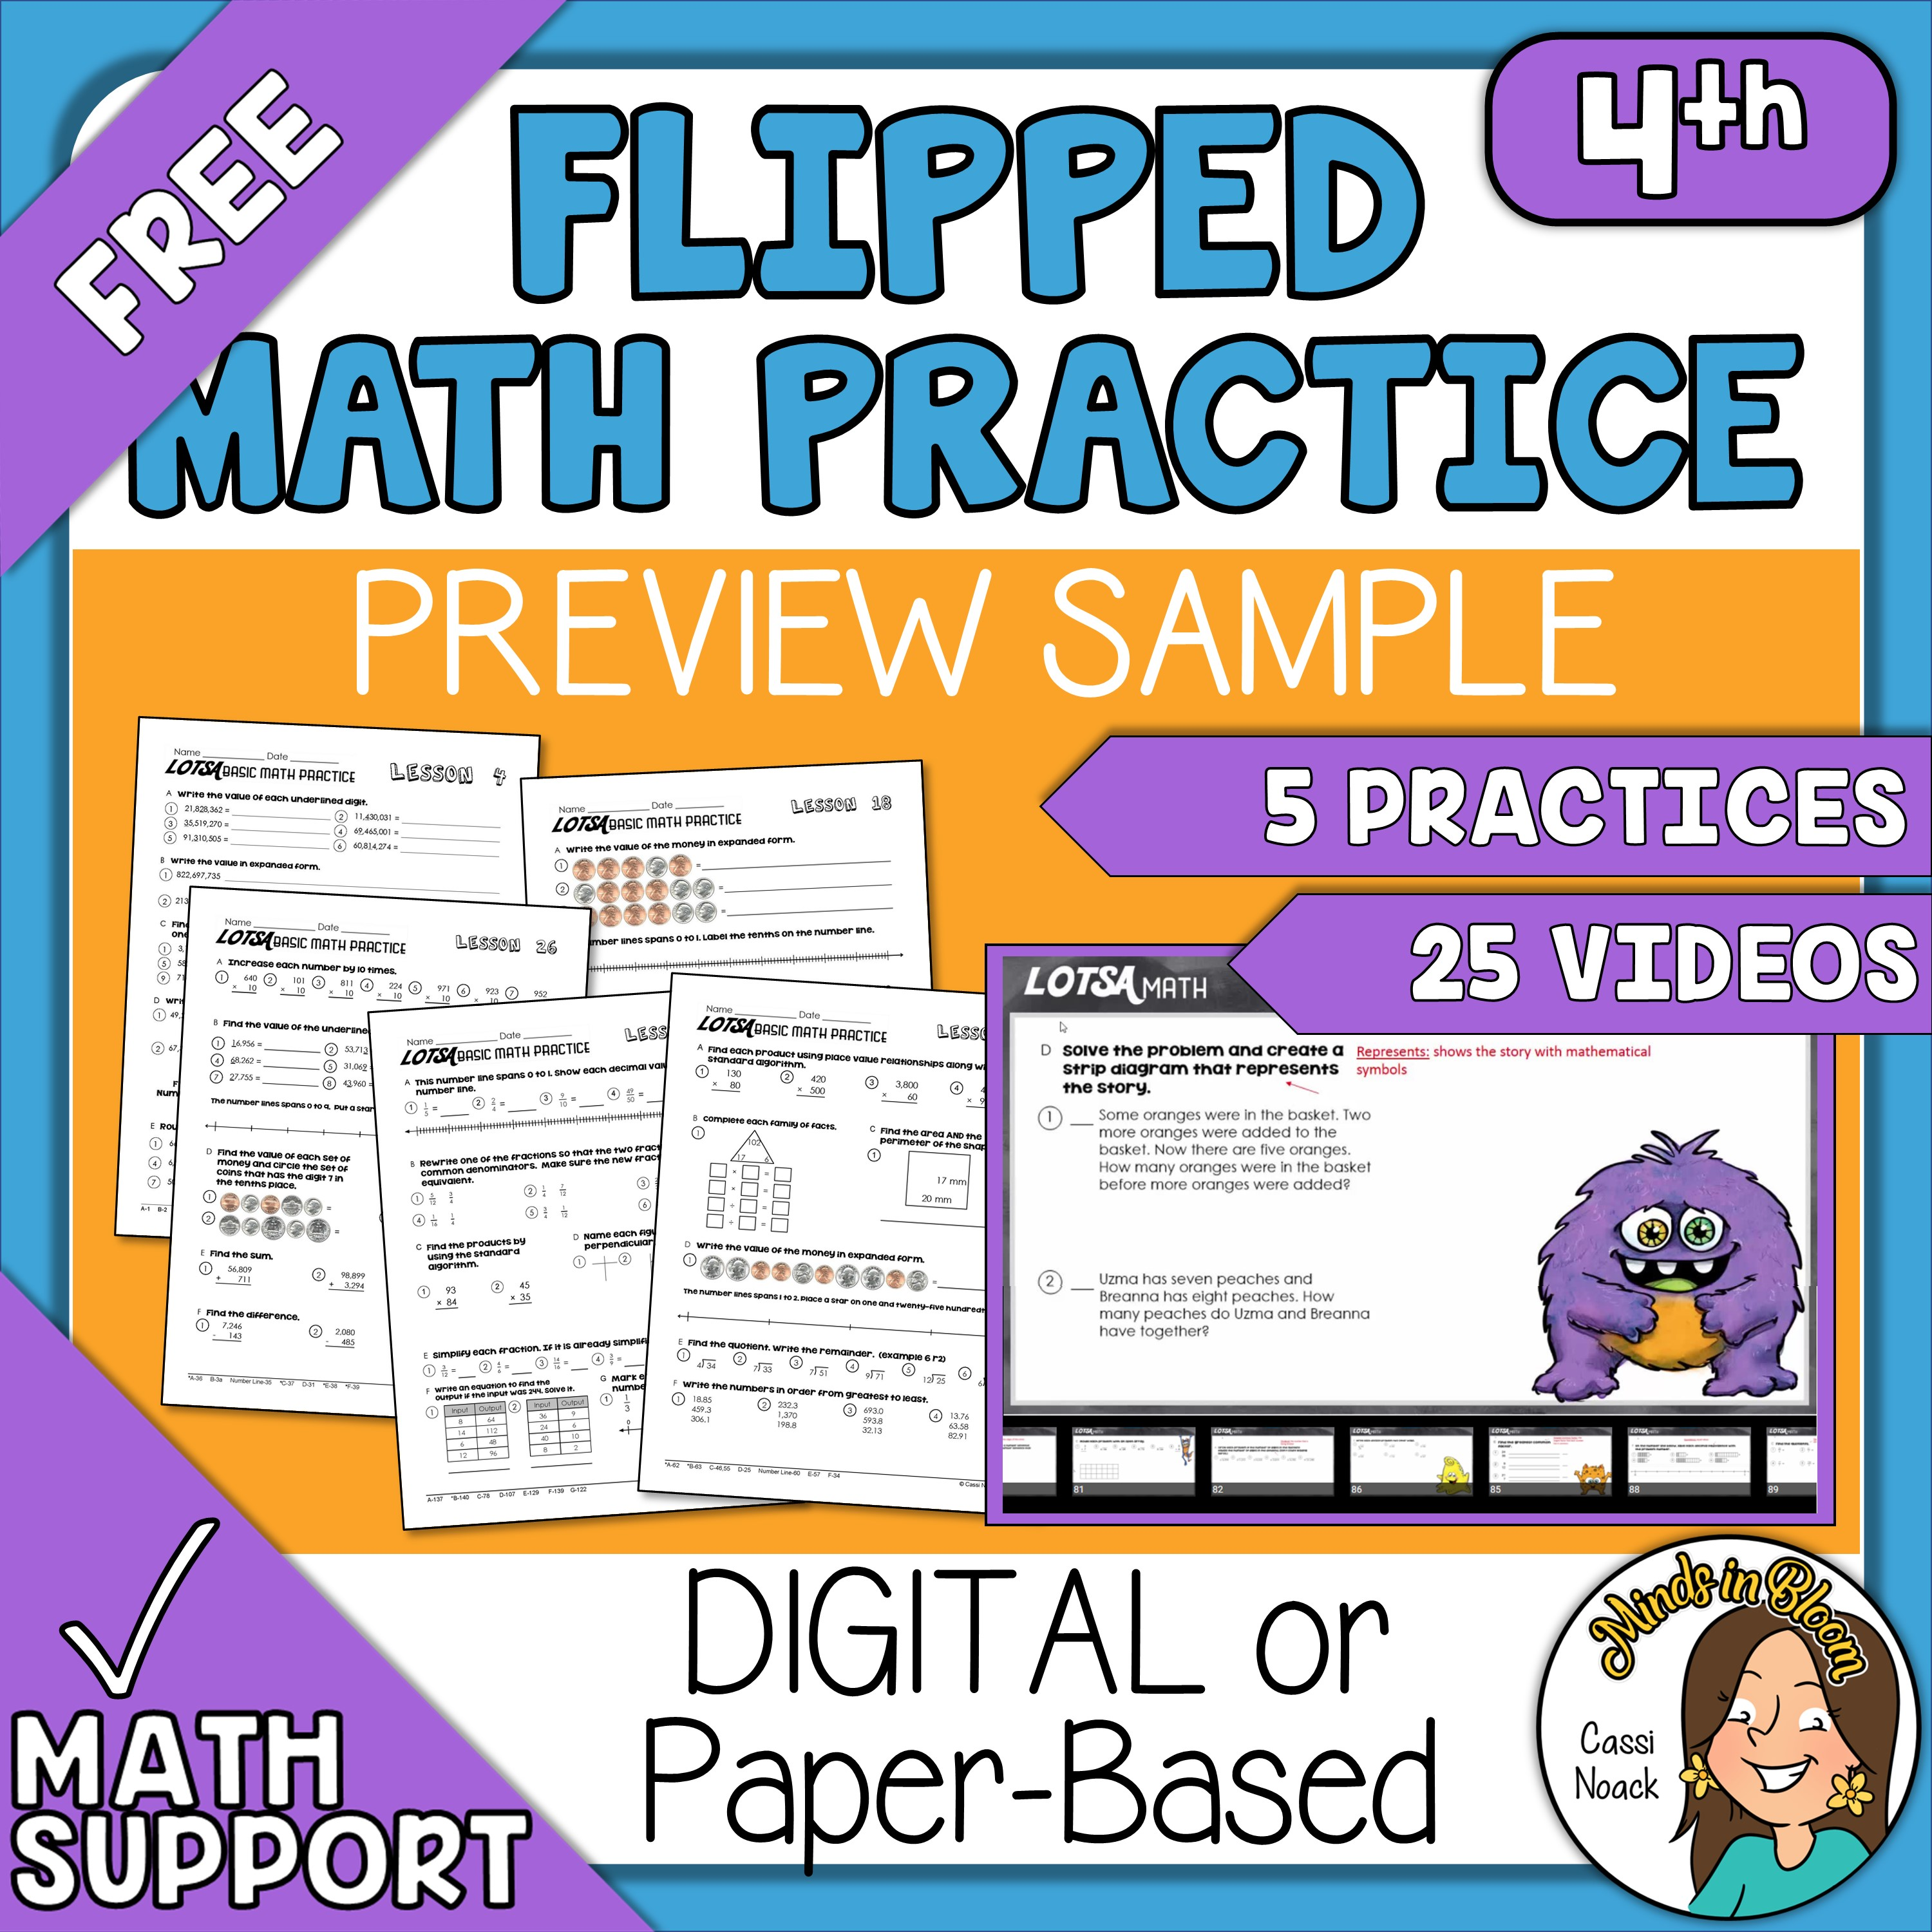 5 FREE Spiraled Practice Worksheets and Video Tutorials Distance Learning 4th Image